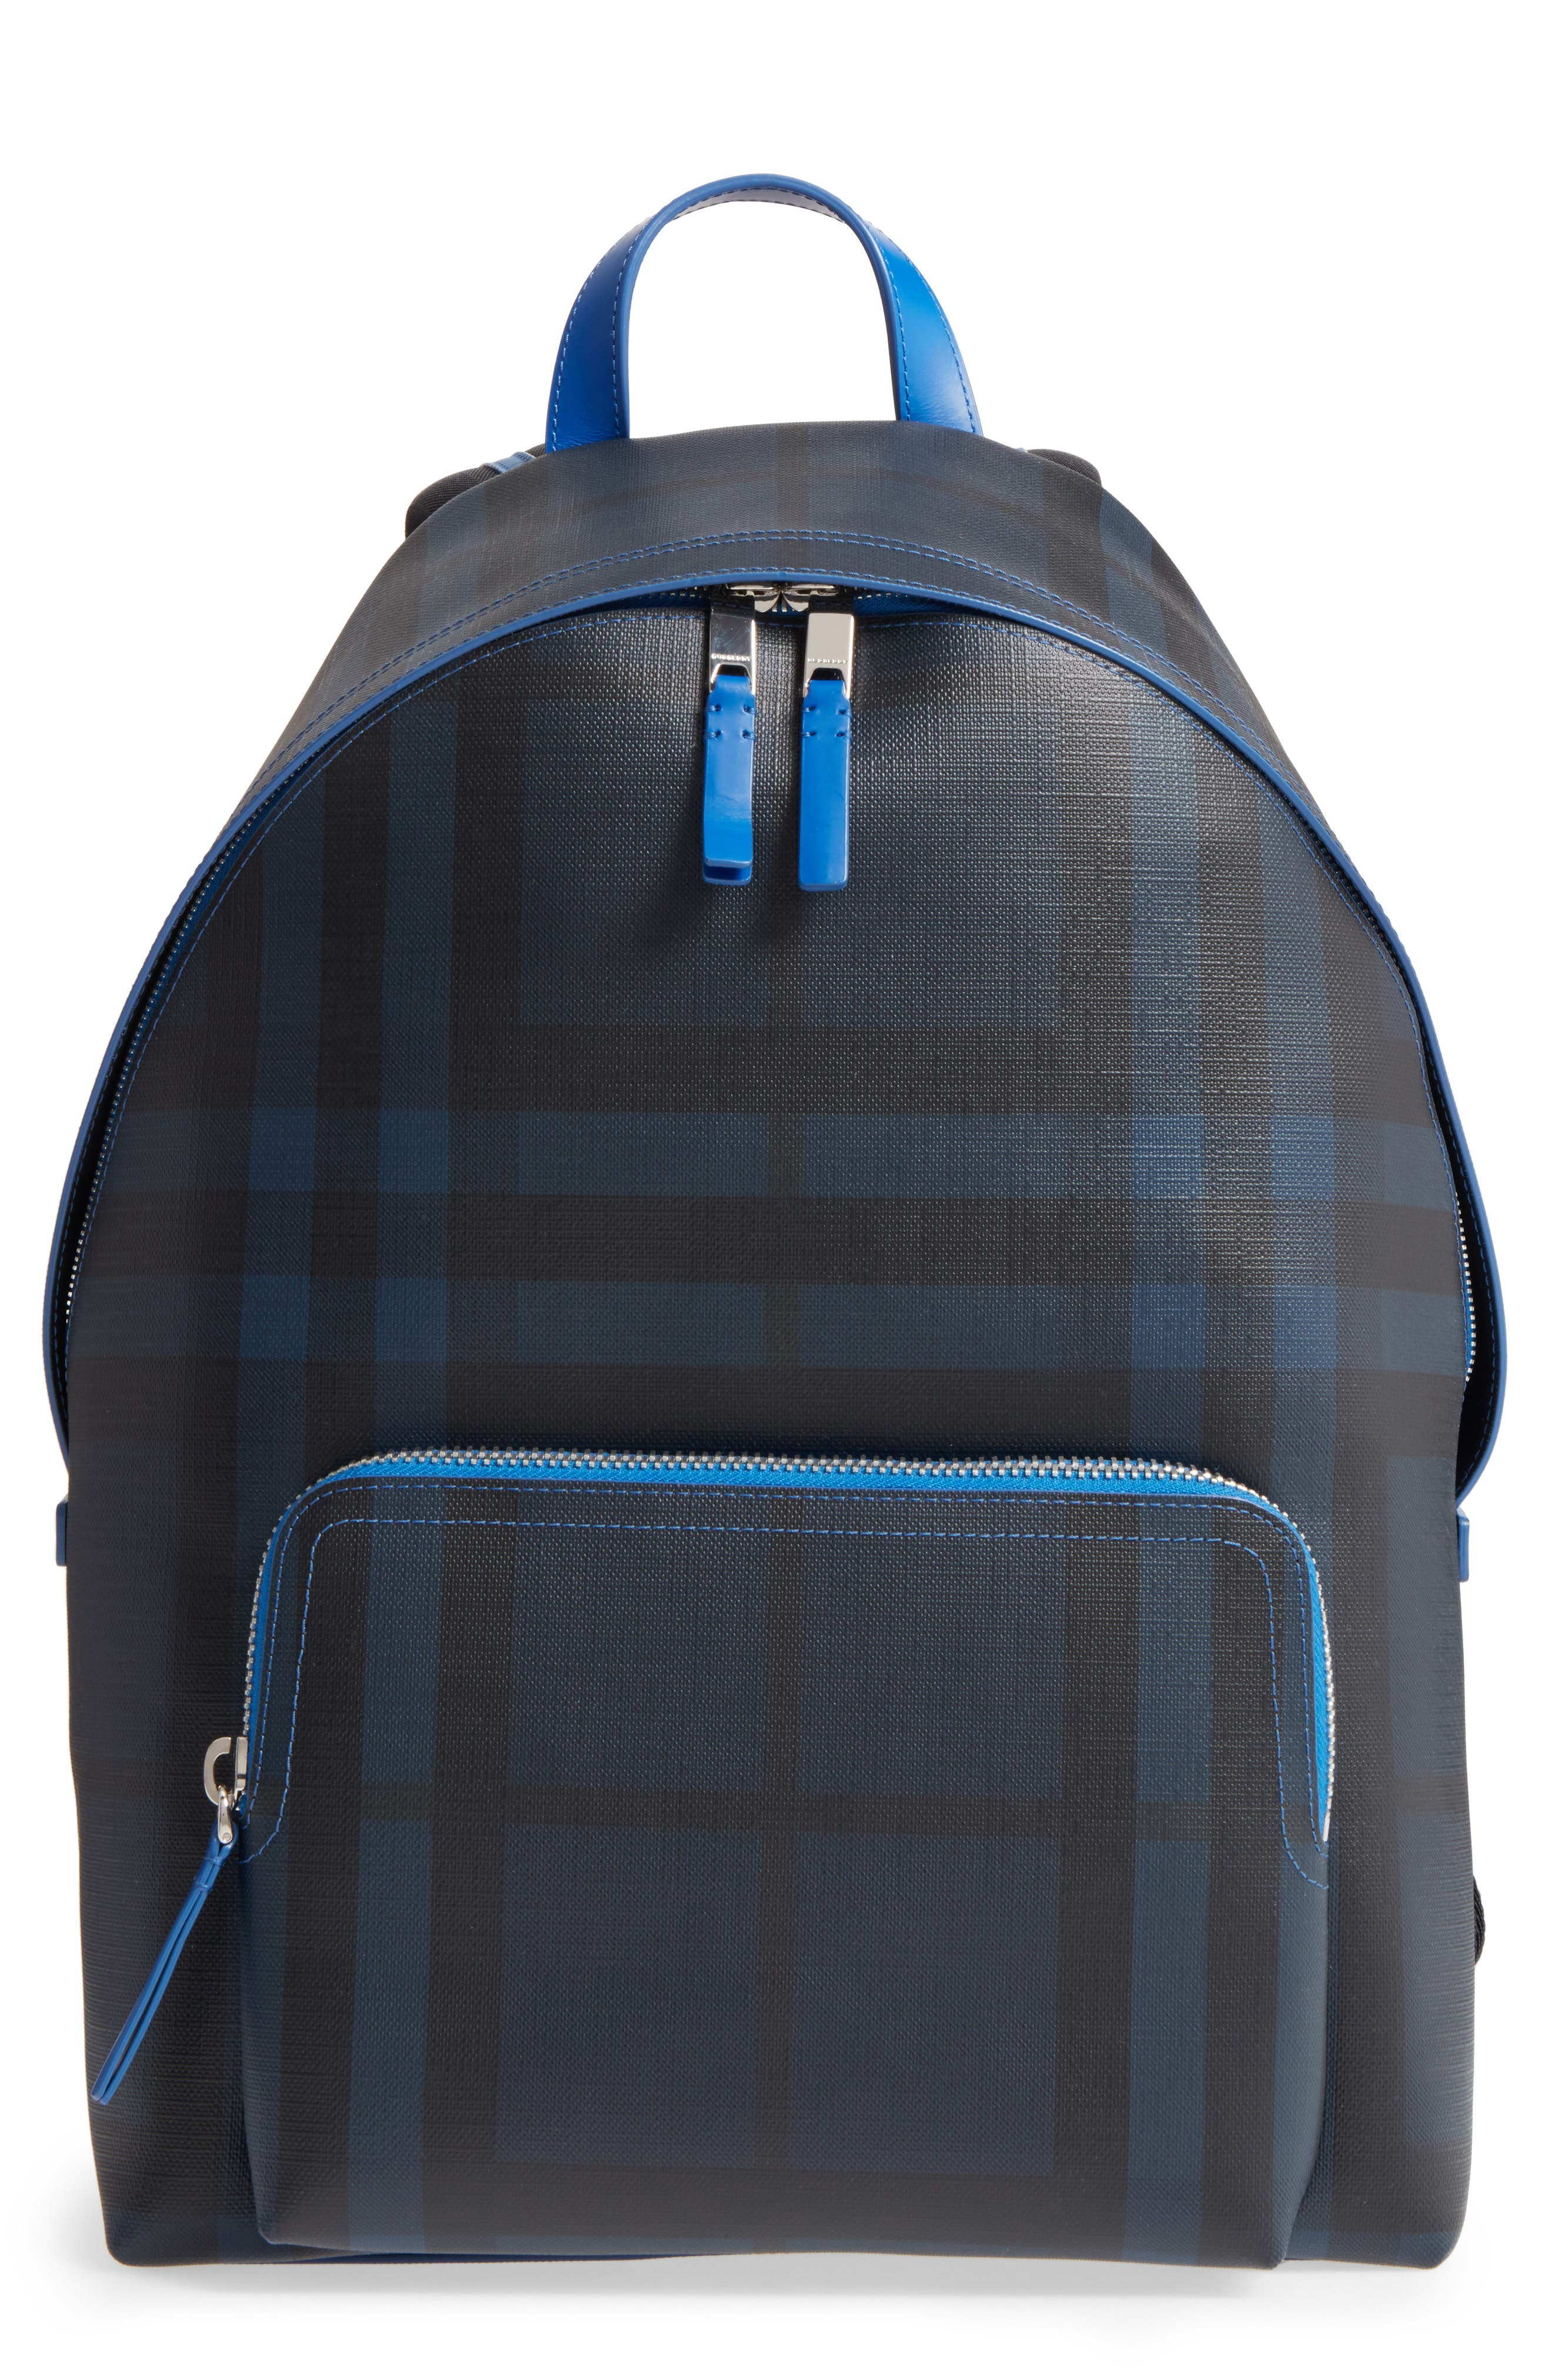 Main Image - Burberry Check Faux Leather Backpack